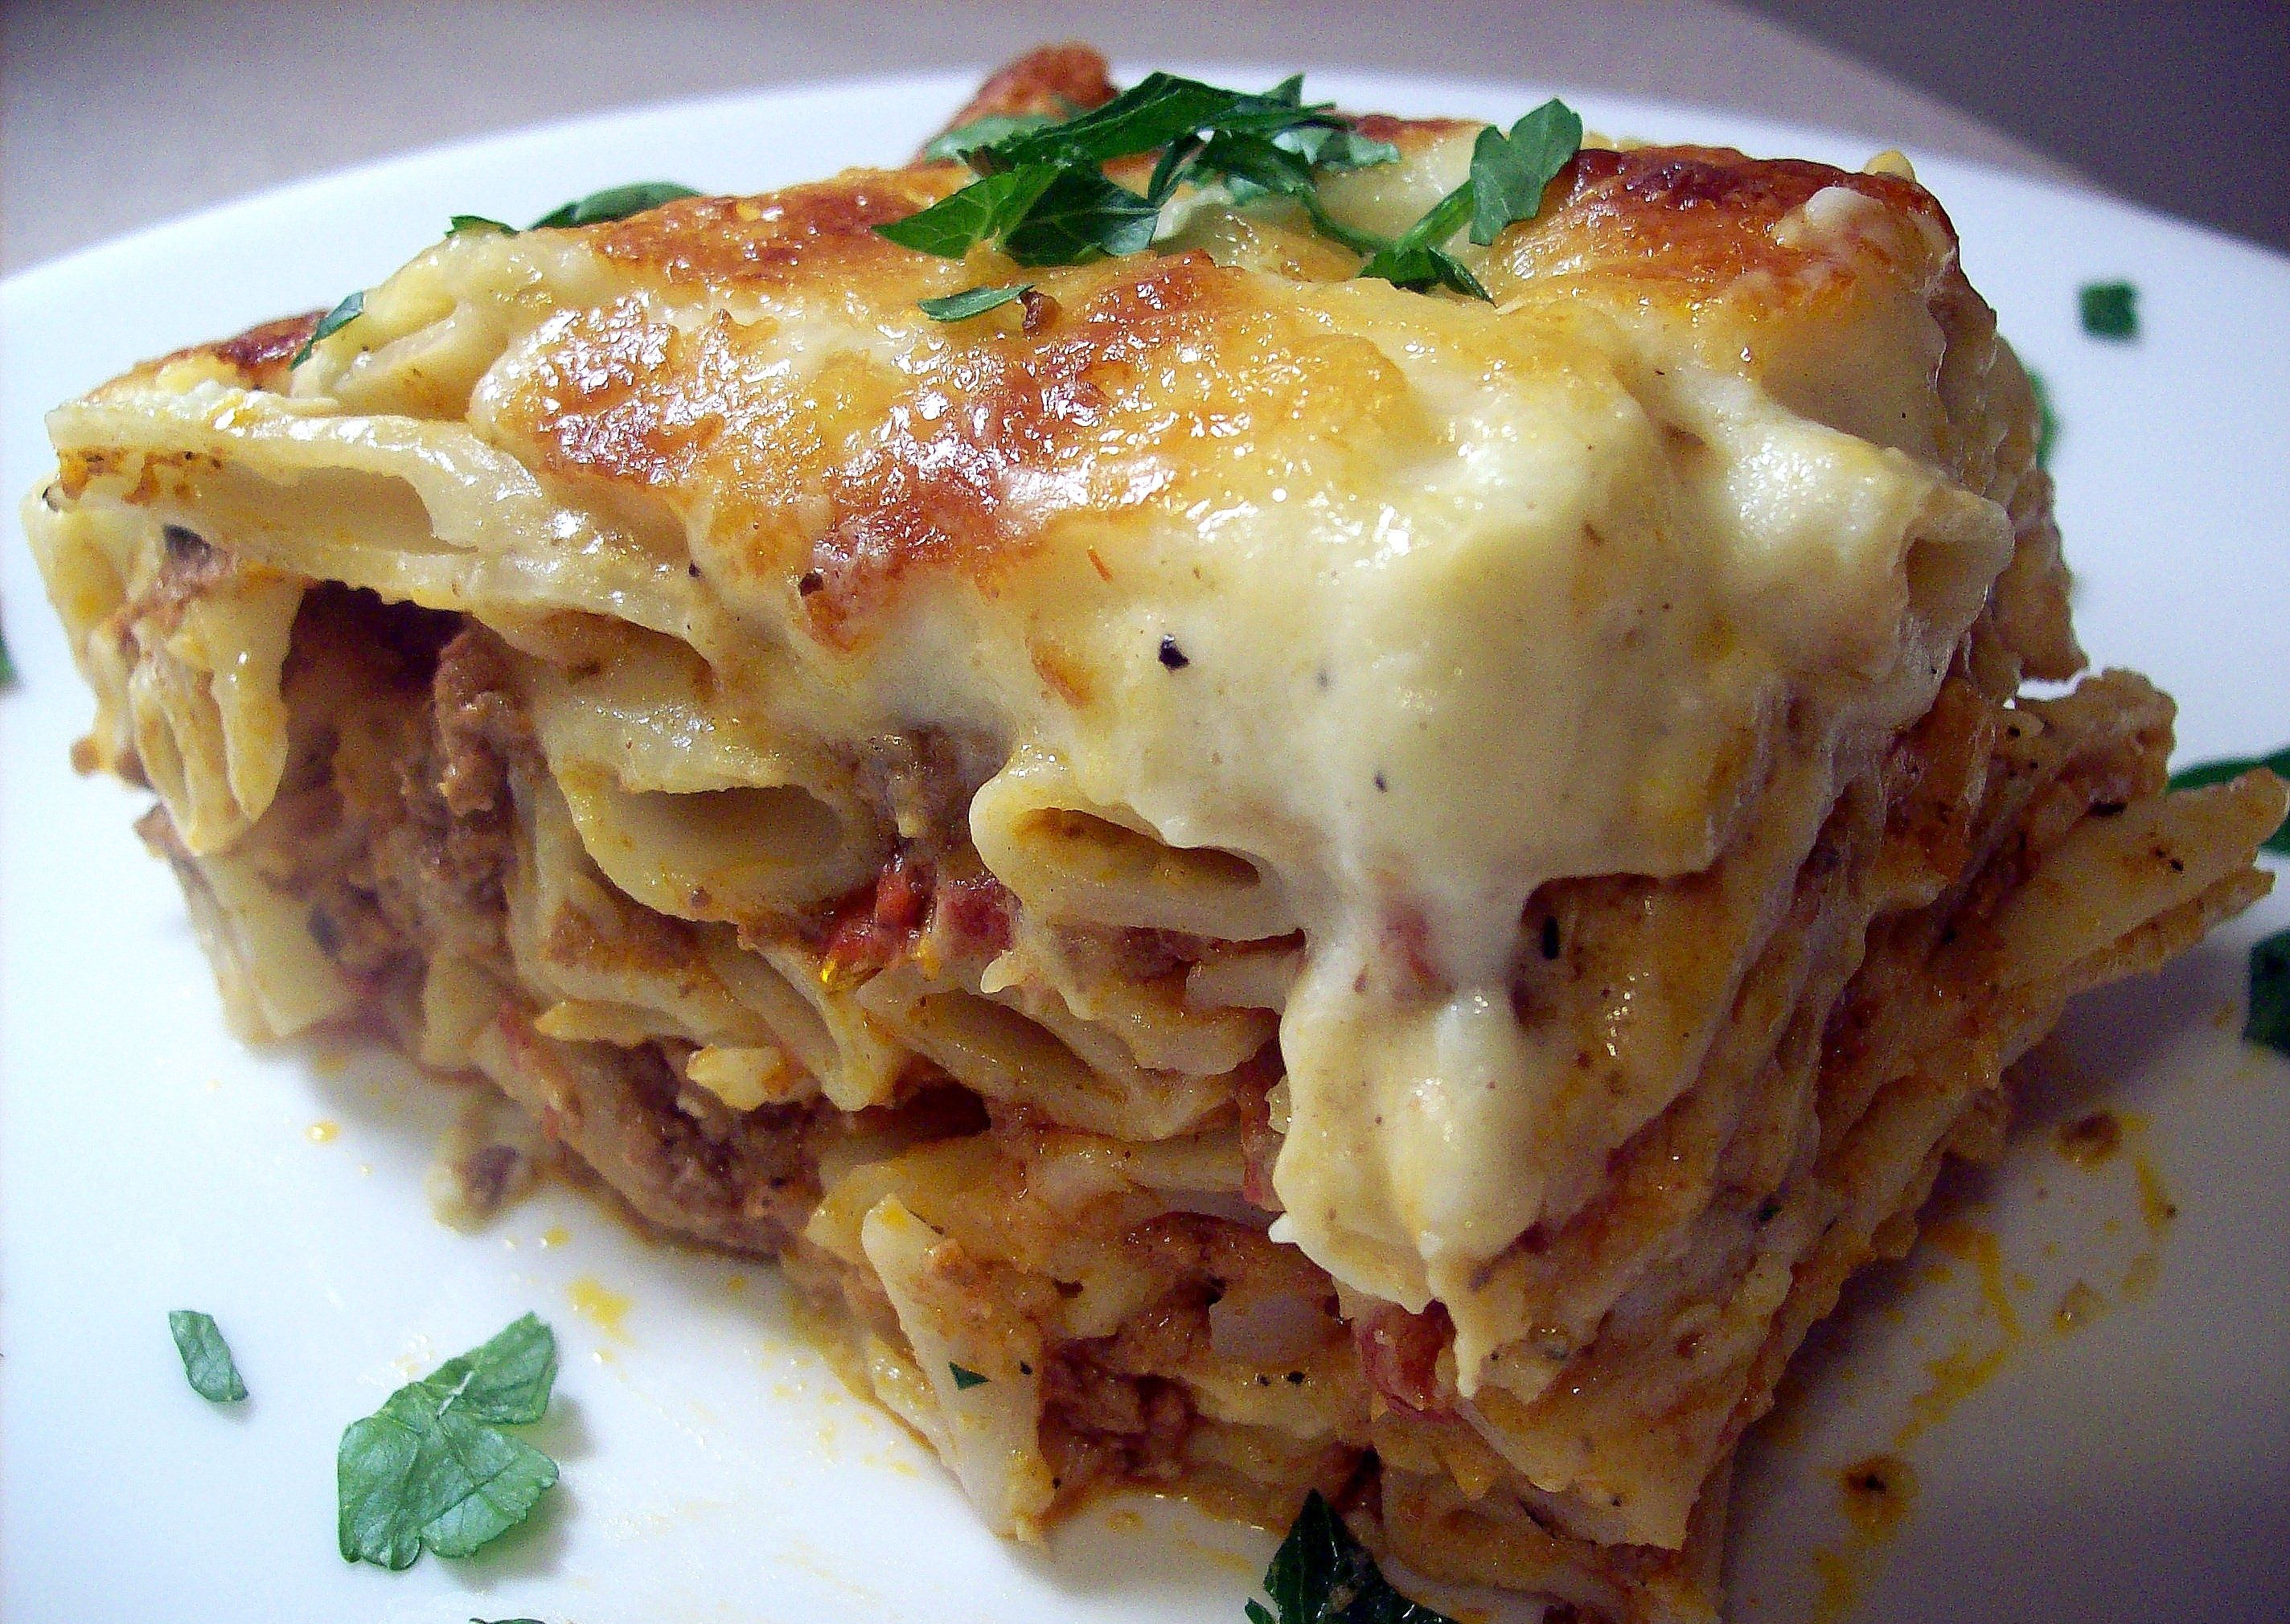 Recipes Course Main Dish Main Dish - Other Pastitsio - Greek Lasagna